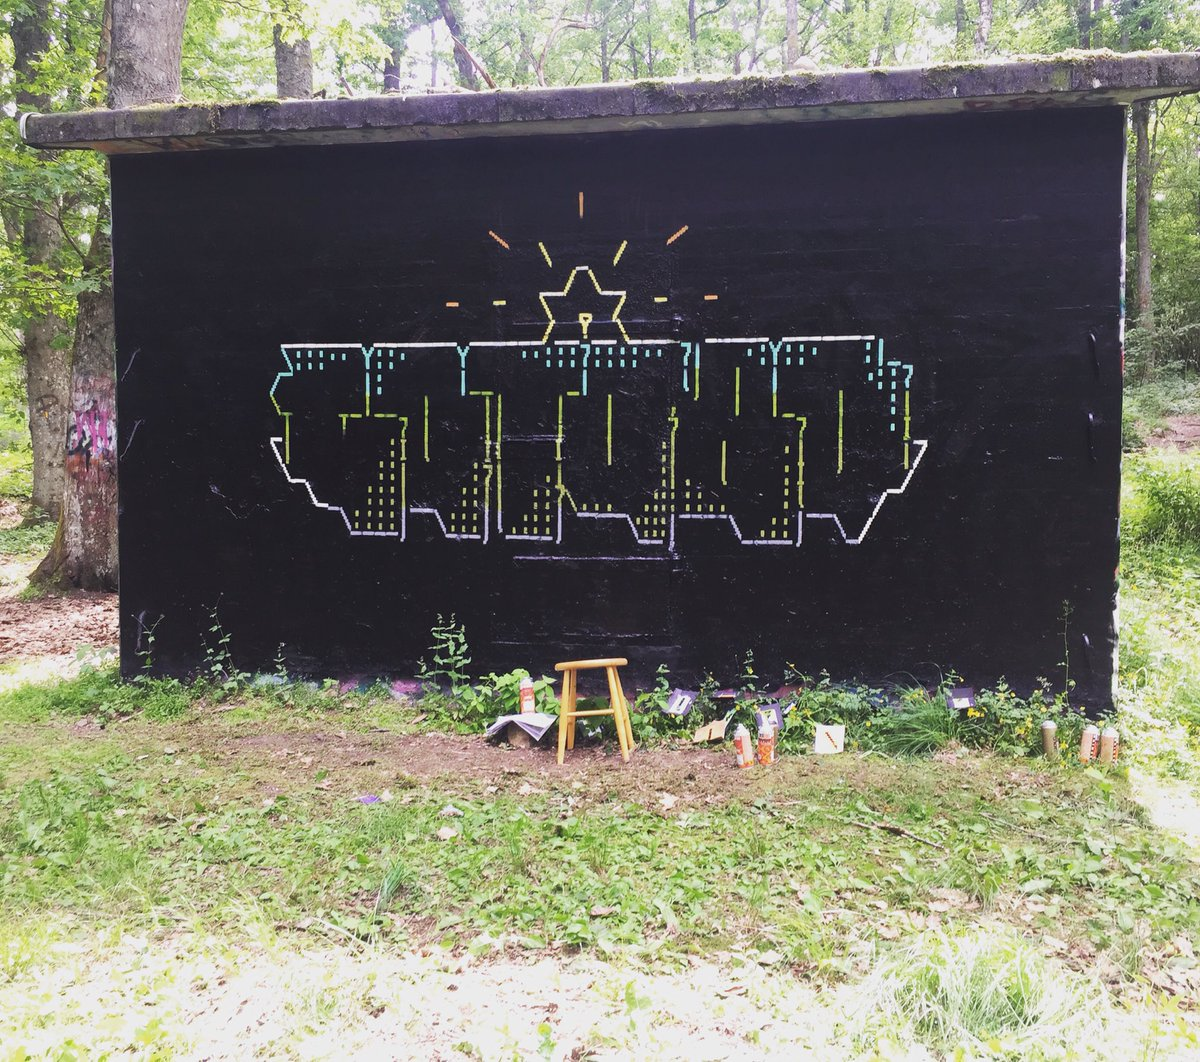 A new #amiga #asciigraffiti. Looks totally absurd IRL in the forest.